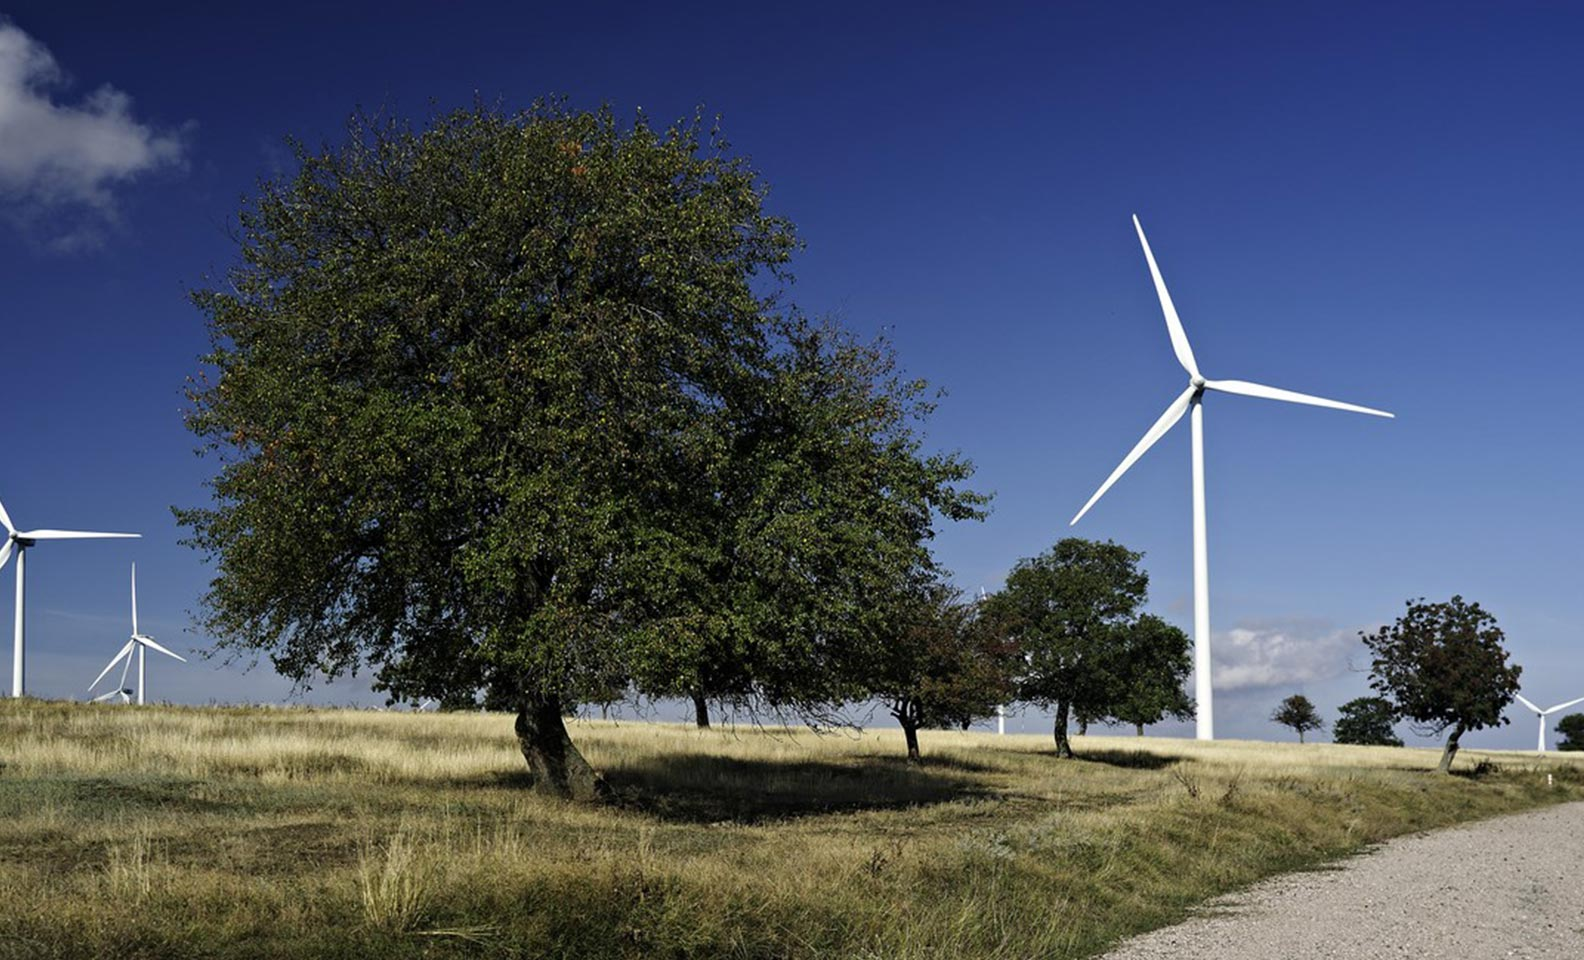 Landscape with wind turbines and trees